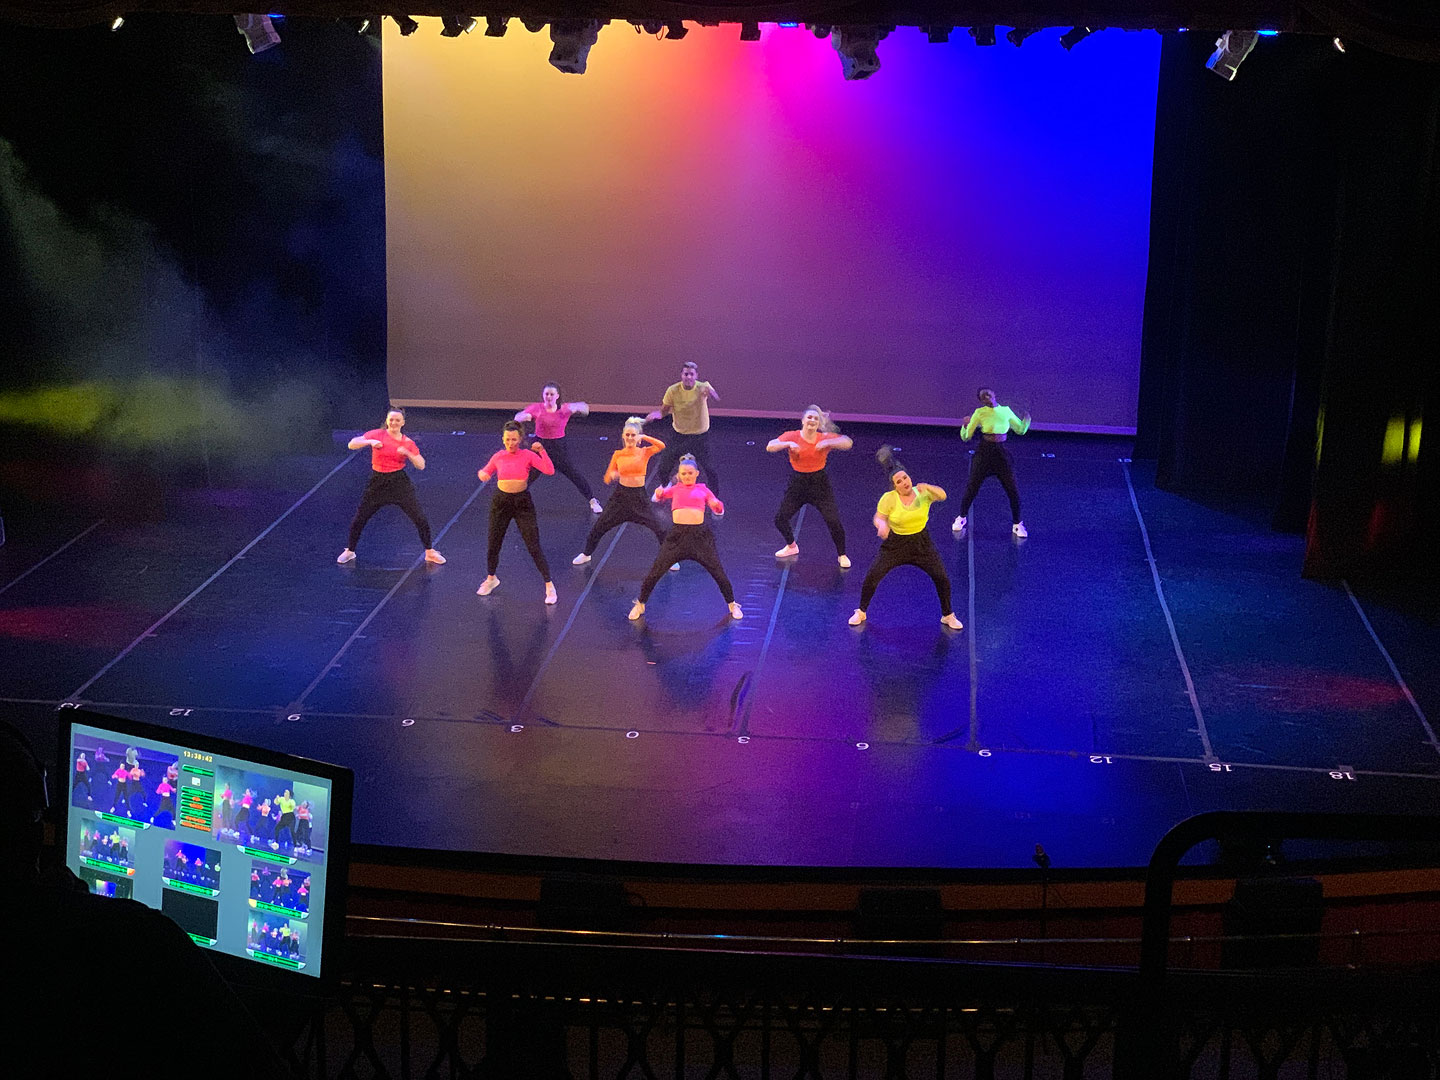 Nine dancers perform on stage